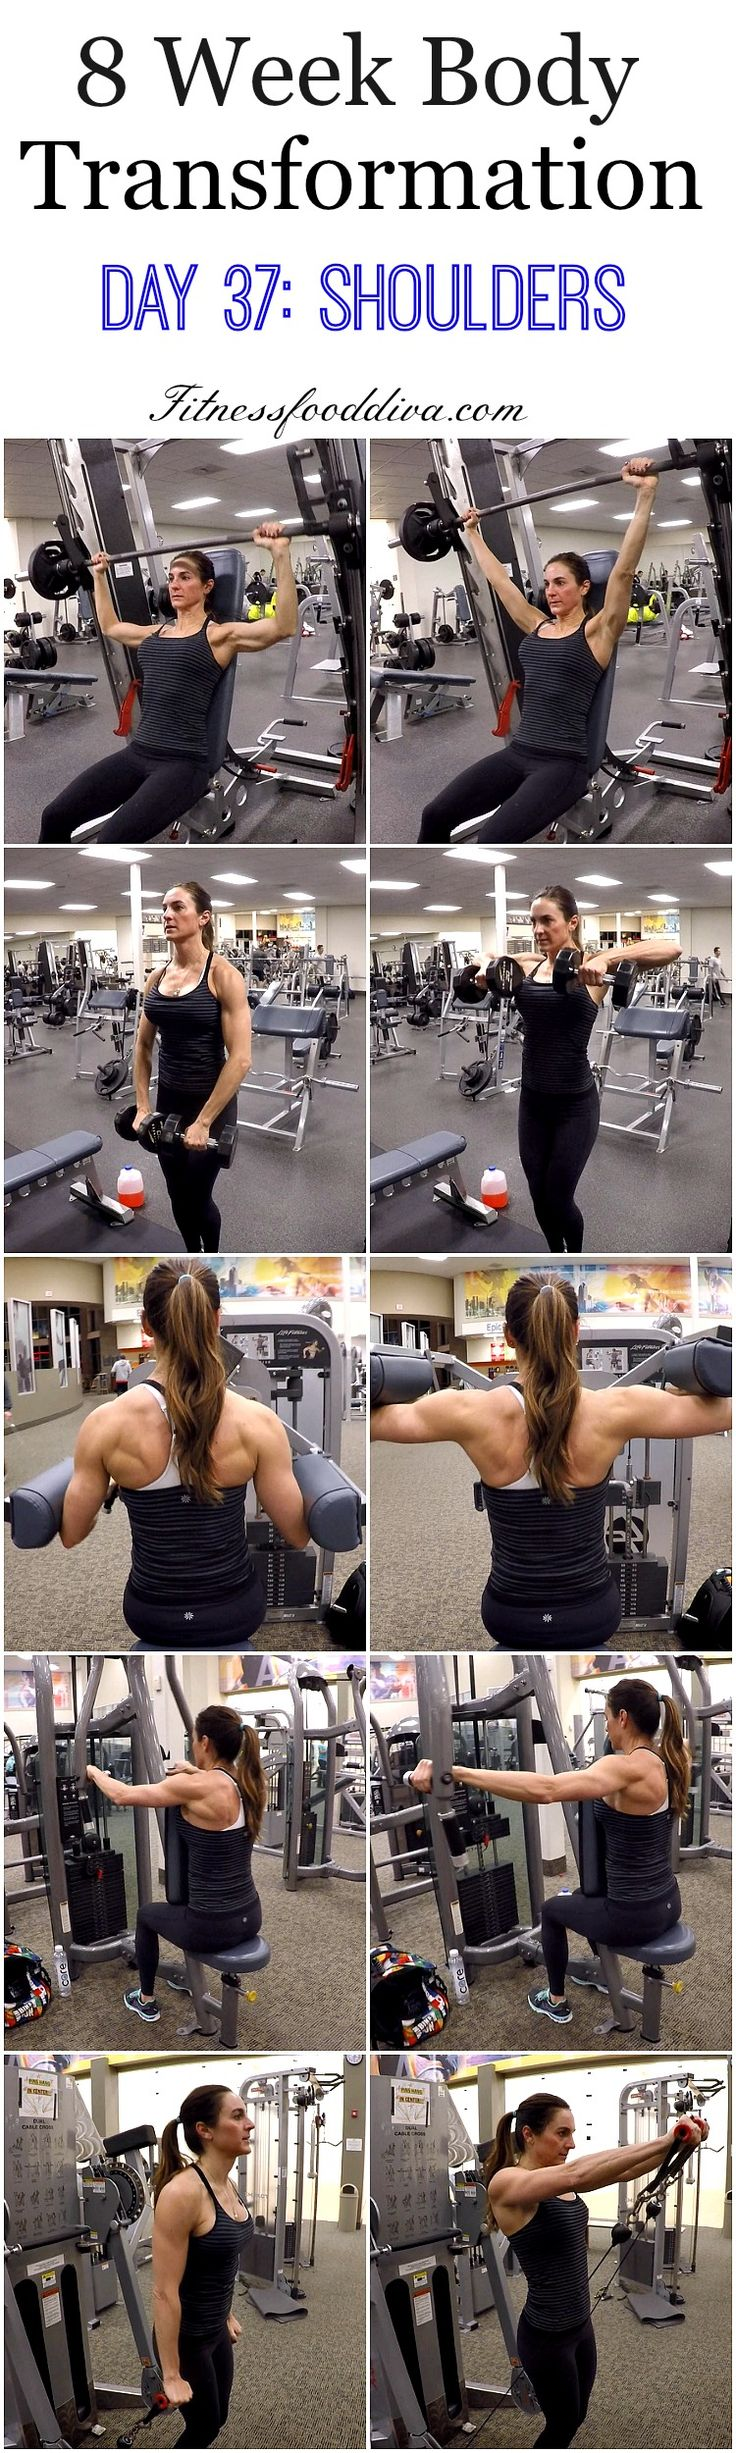 8 Week Body Transformation: Day 37 Shoulders.